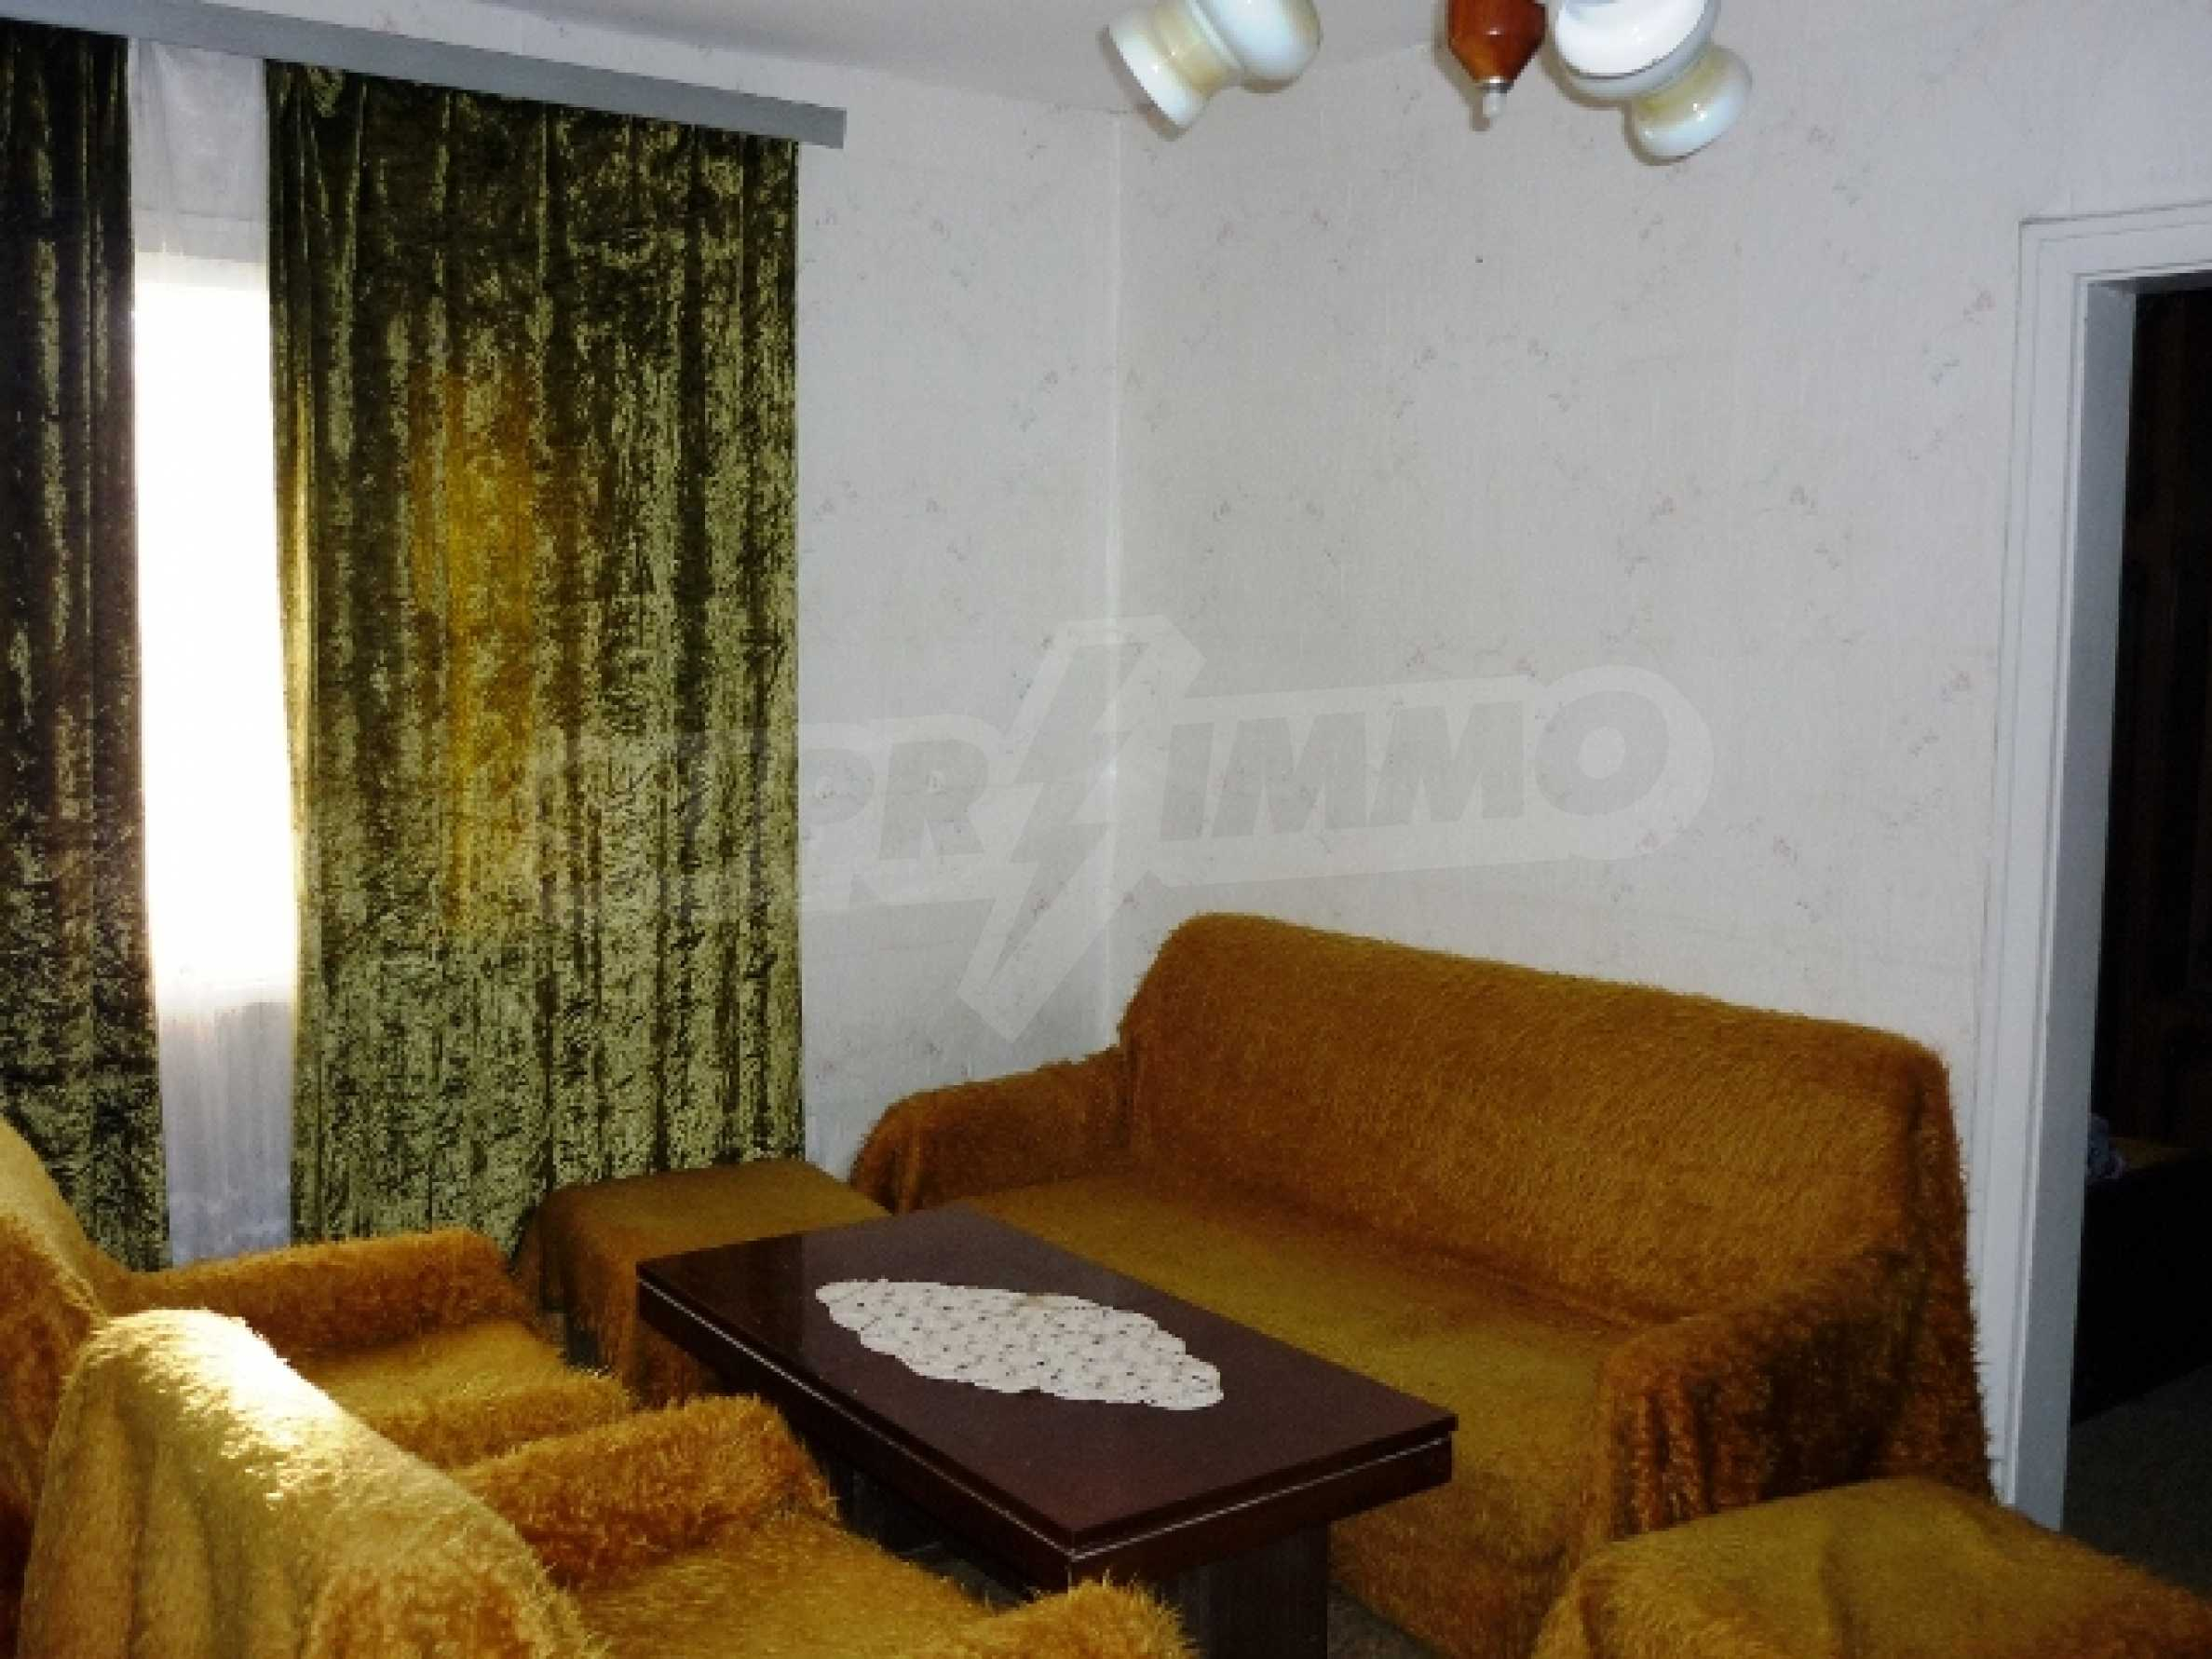 One-storey 5-bedroom house in Ostritsa village, Ruse district 13